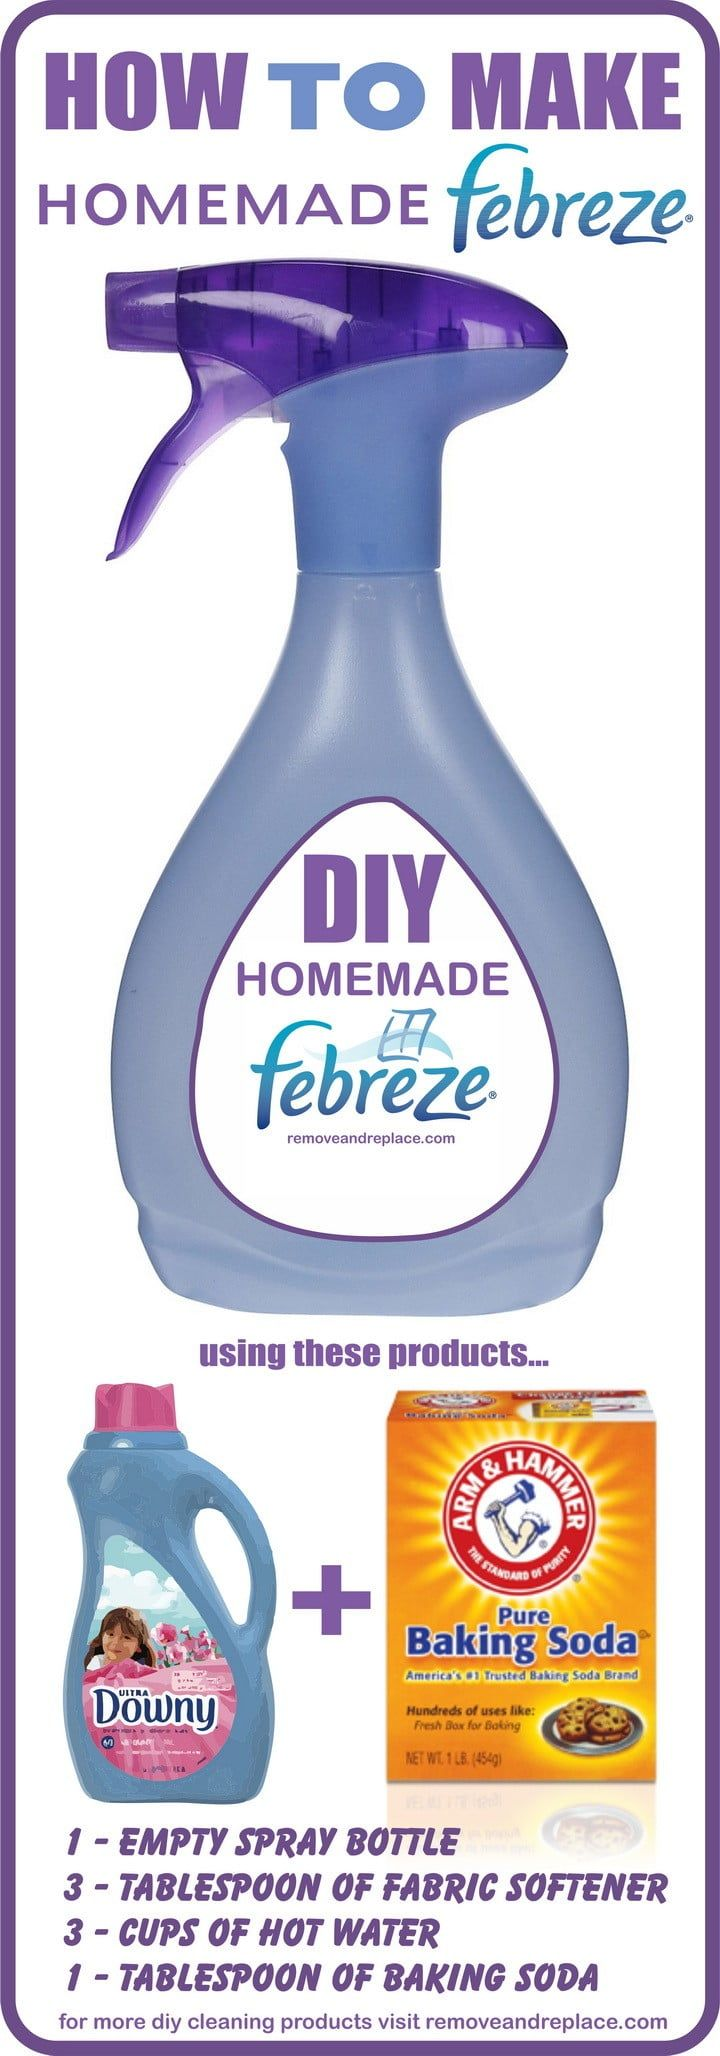 We all love Febreze Air Freshener but it can sometimes be expensive. Why not make your own DIY Febreze Fabric Freshener and save some money! You may also be interested in How To Make Your Own 409 Cleaner. Make Your Own DIY Homemade Febreze DIY Homemade Febreze is so easy to make and you will … … Continue reading →